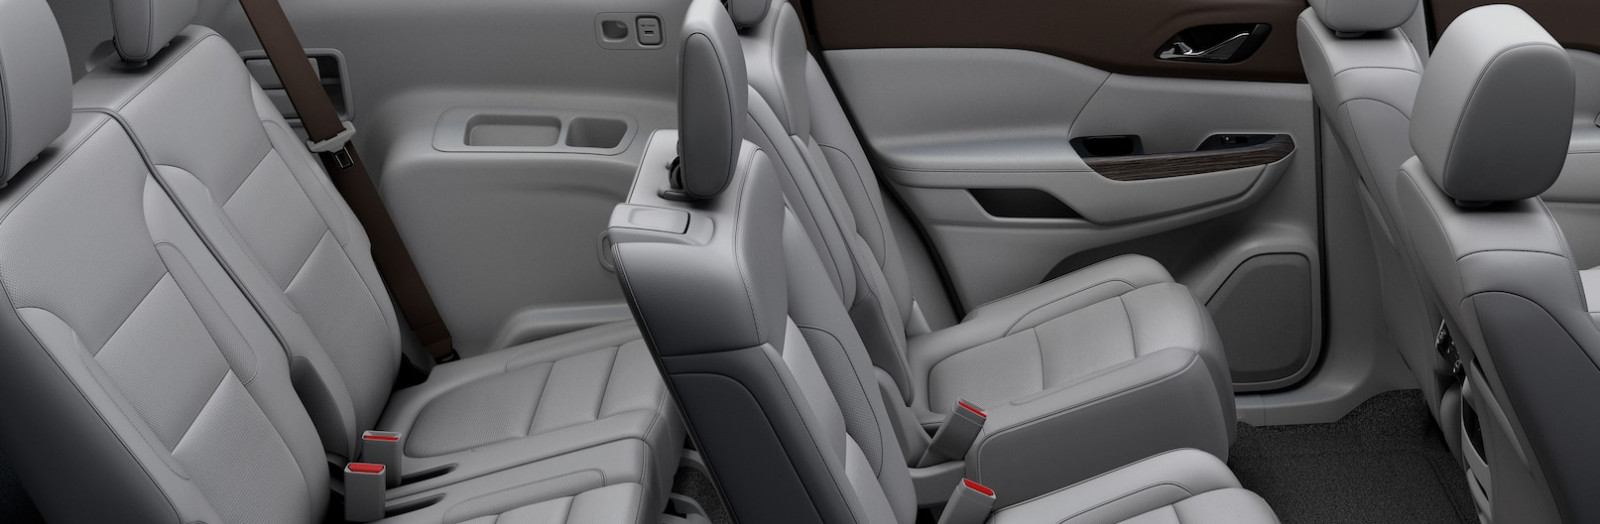 Interior of the 2019 Acadia